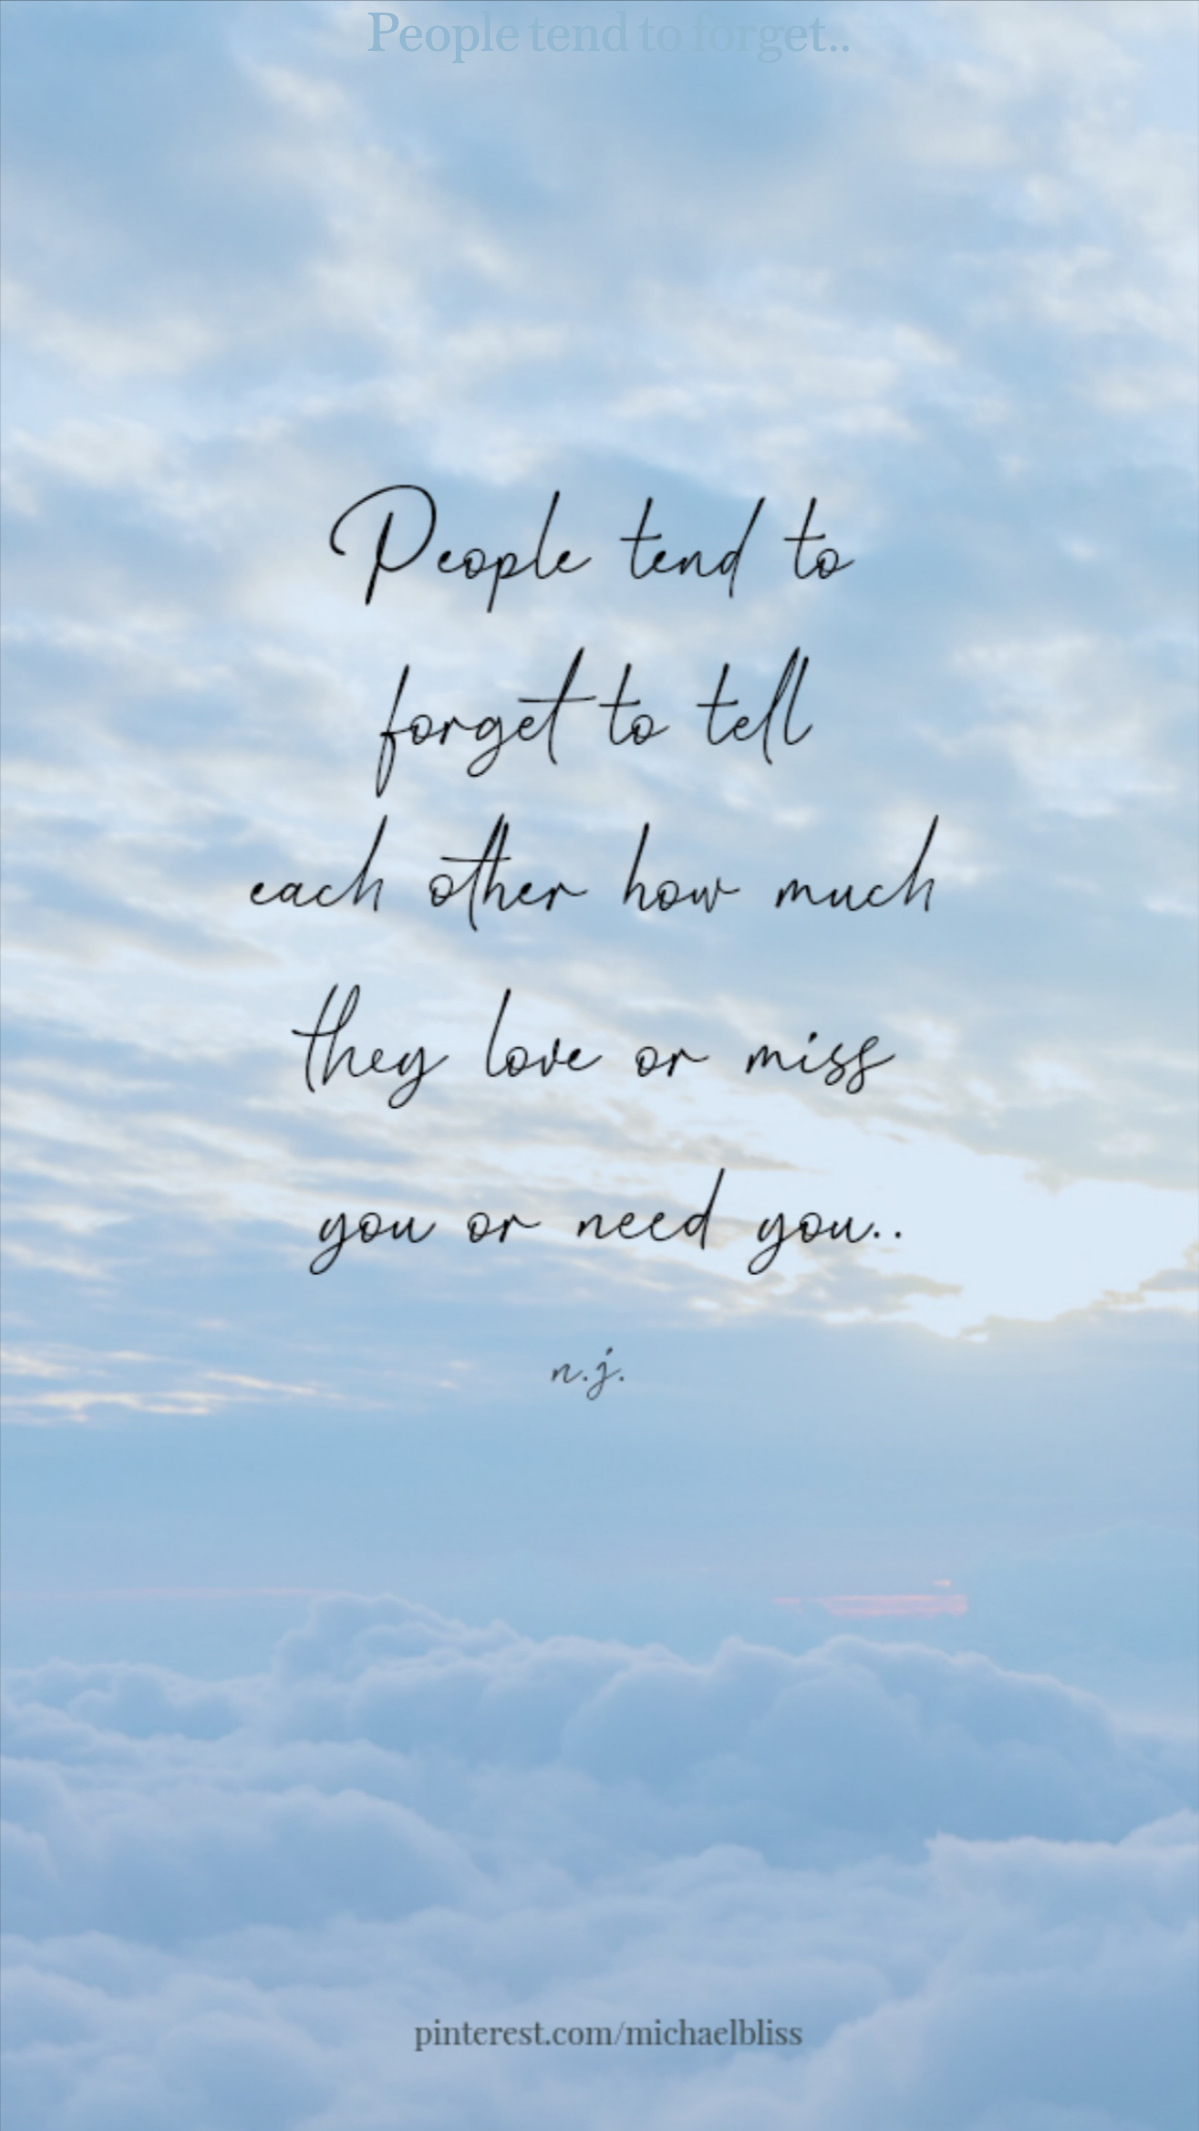 People tend to forget..